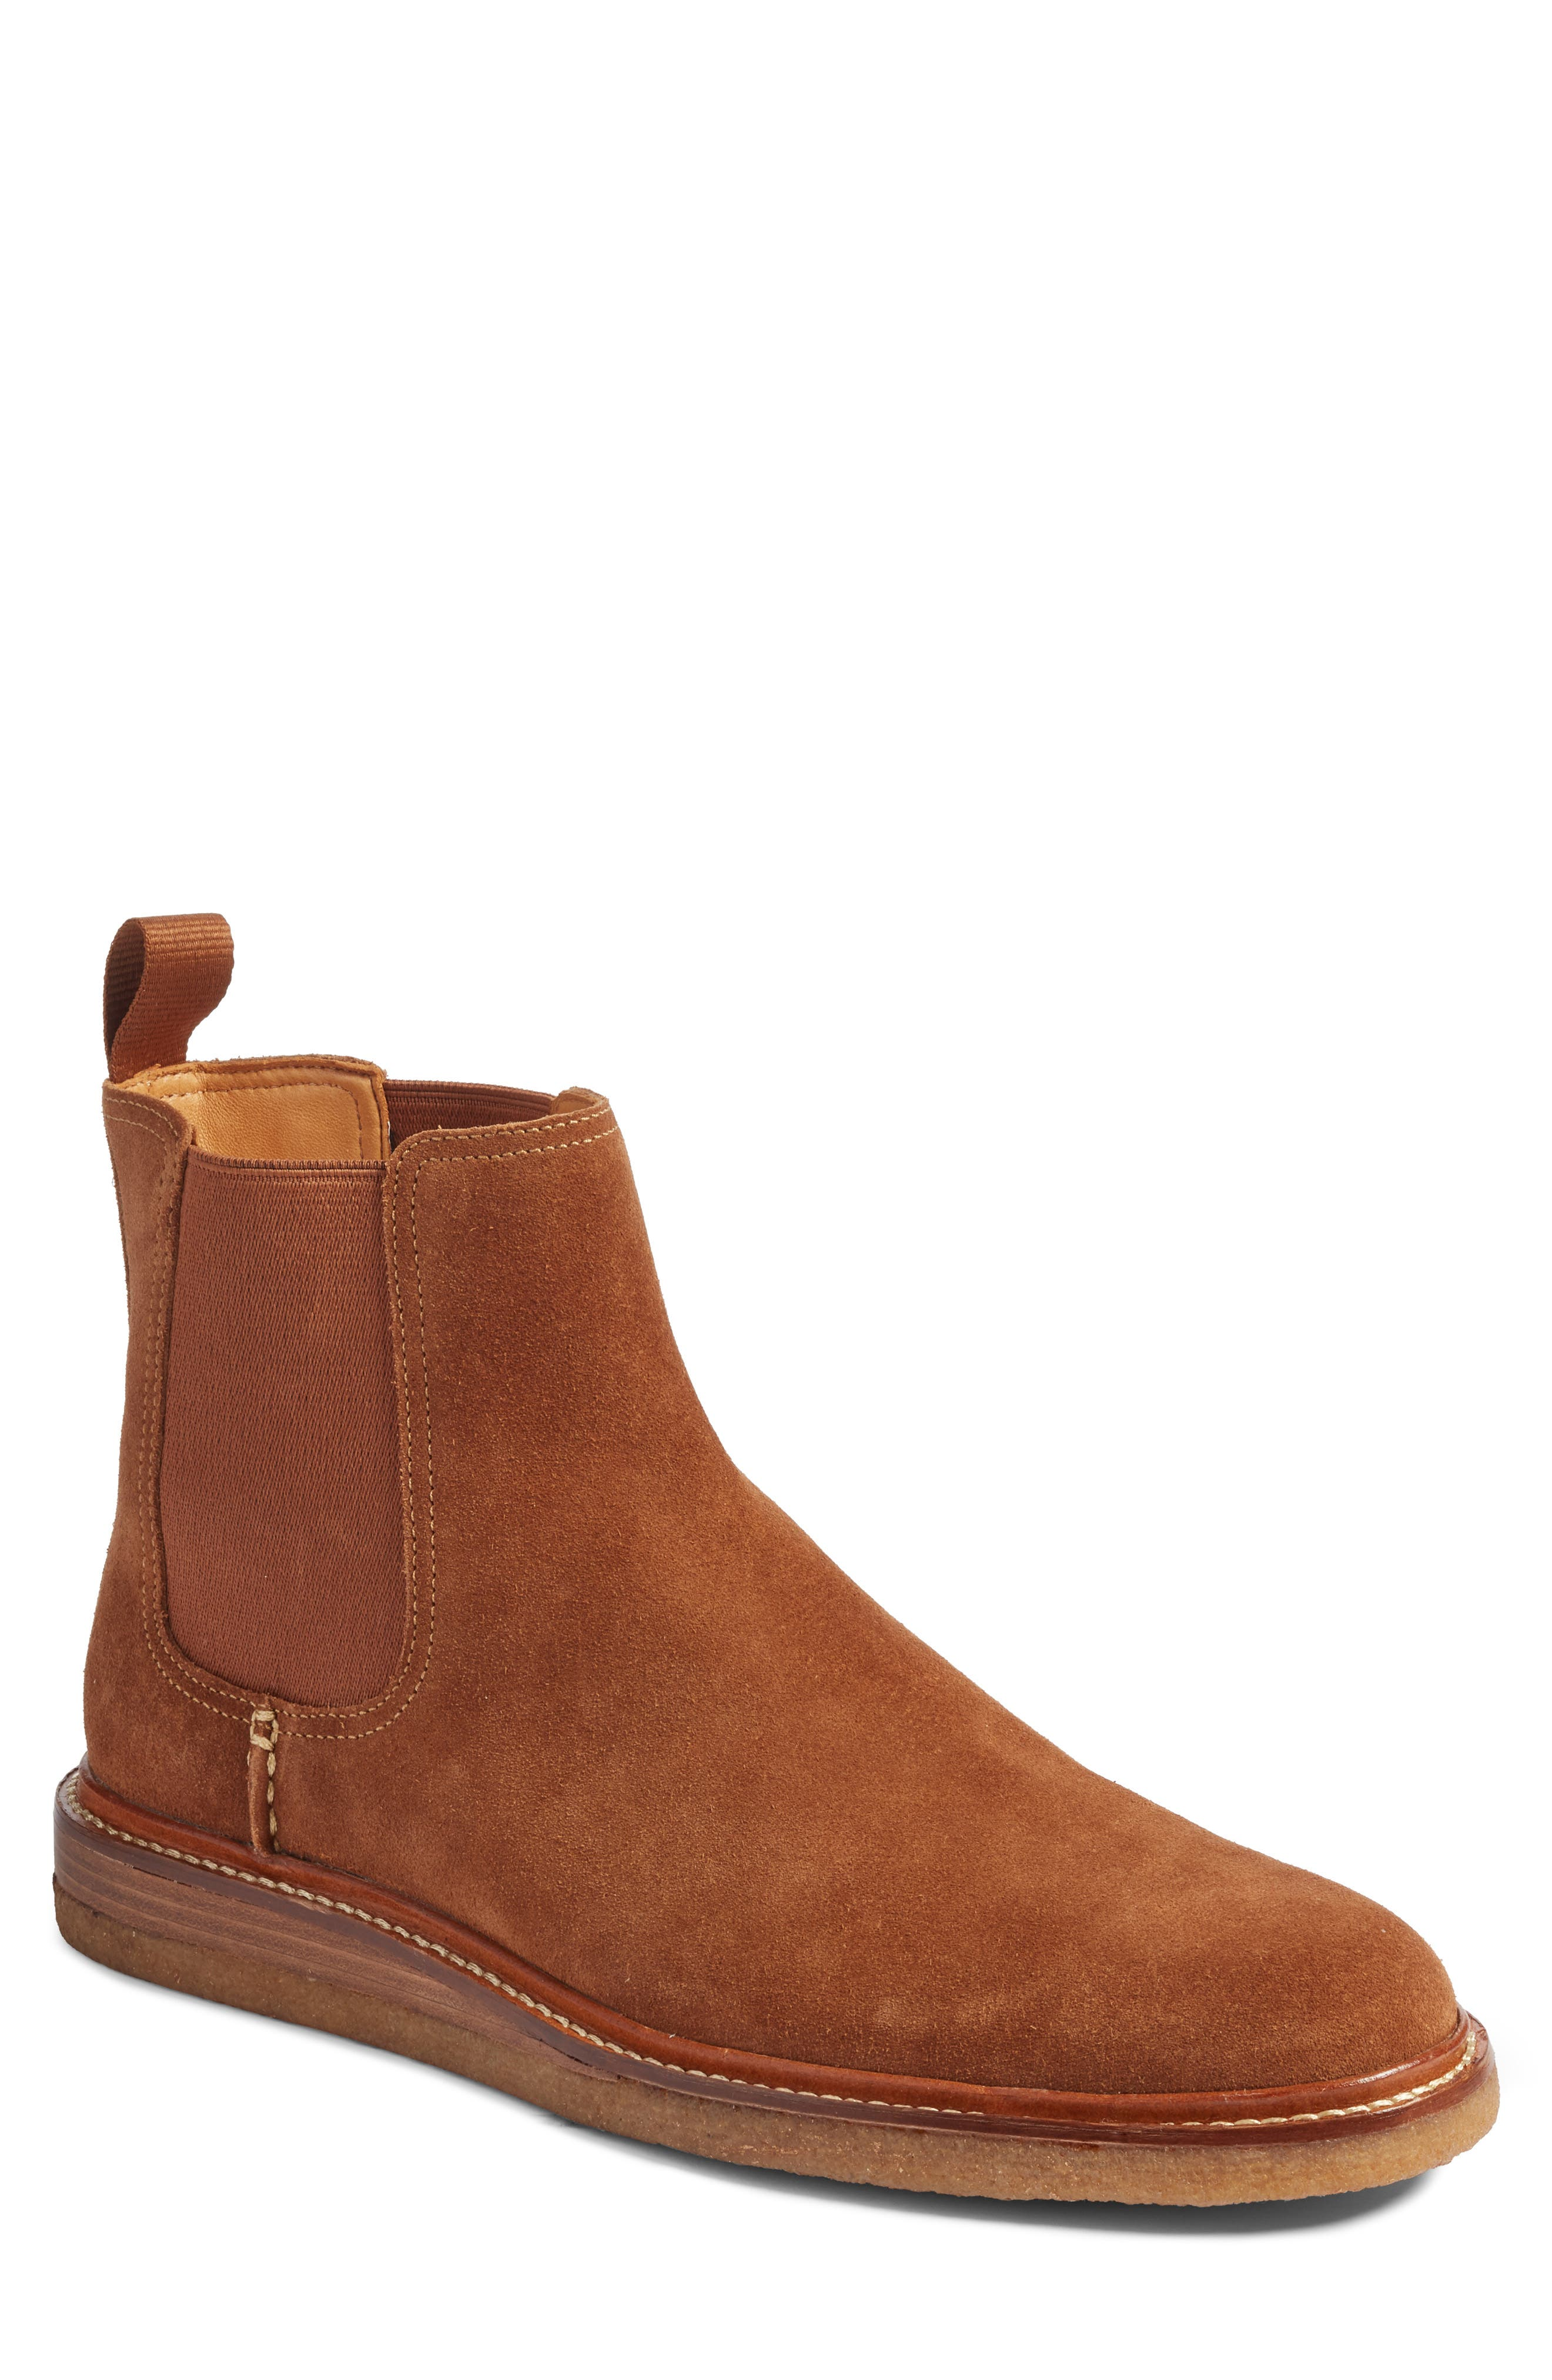 Main Image - Sperry Leather Chelsea Boot (Men)